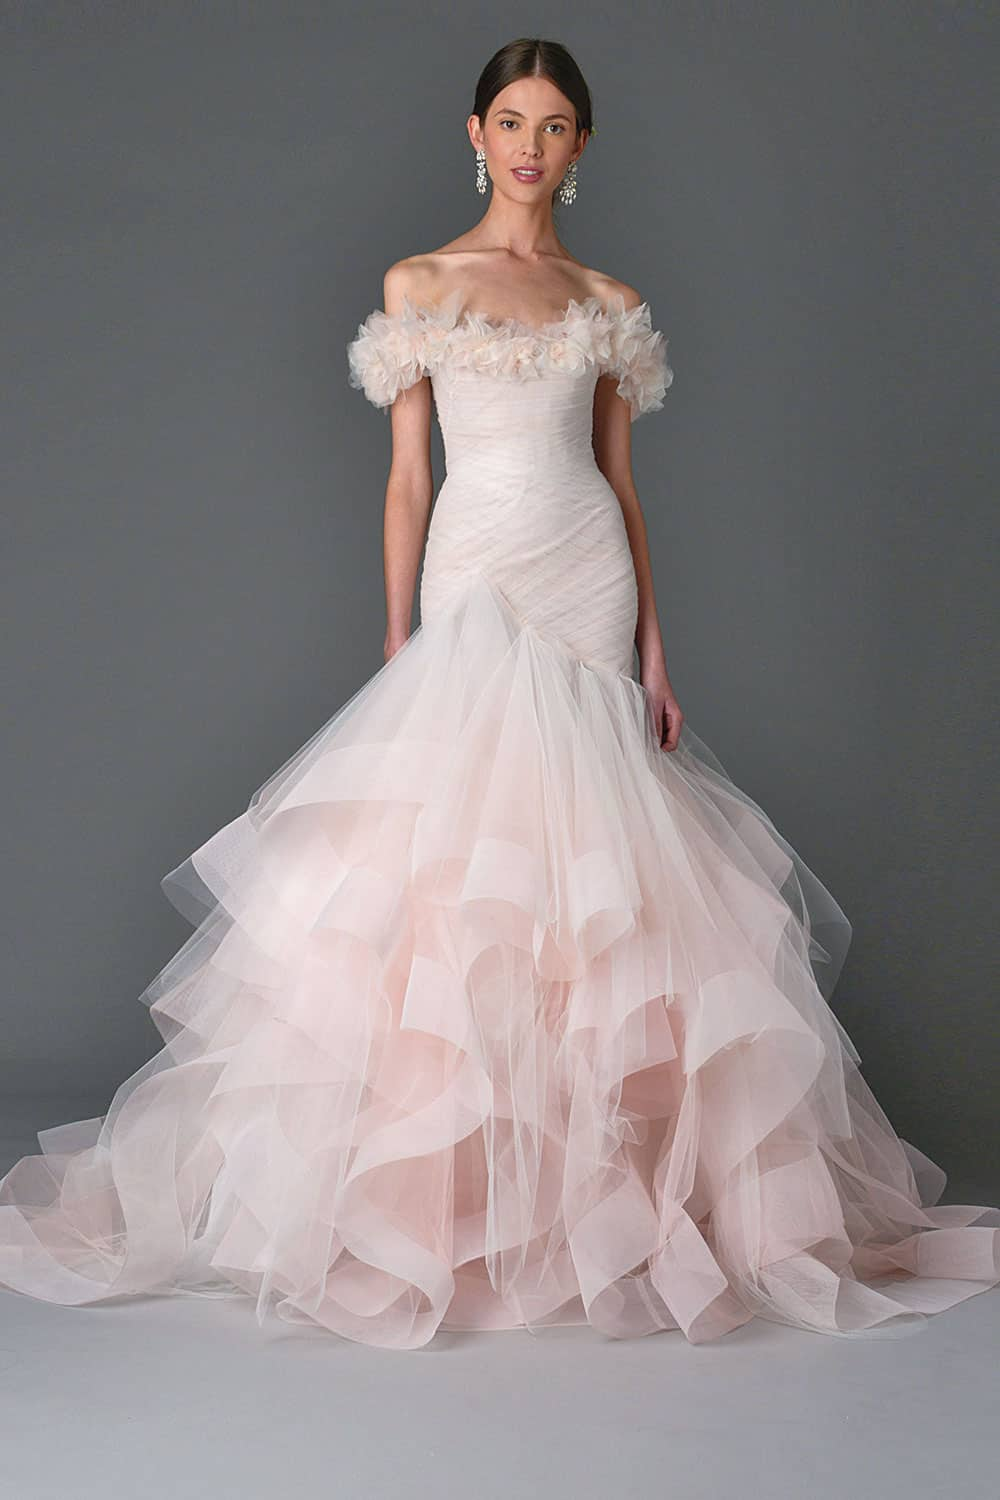 Pink wedding dresses: Blush pink mermaid wedding gown from Marchesa.